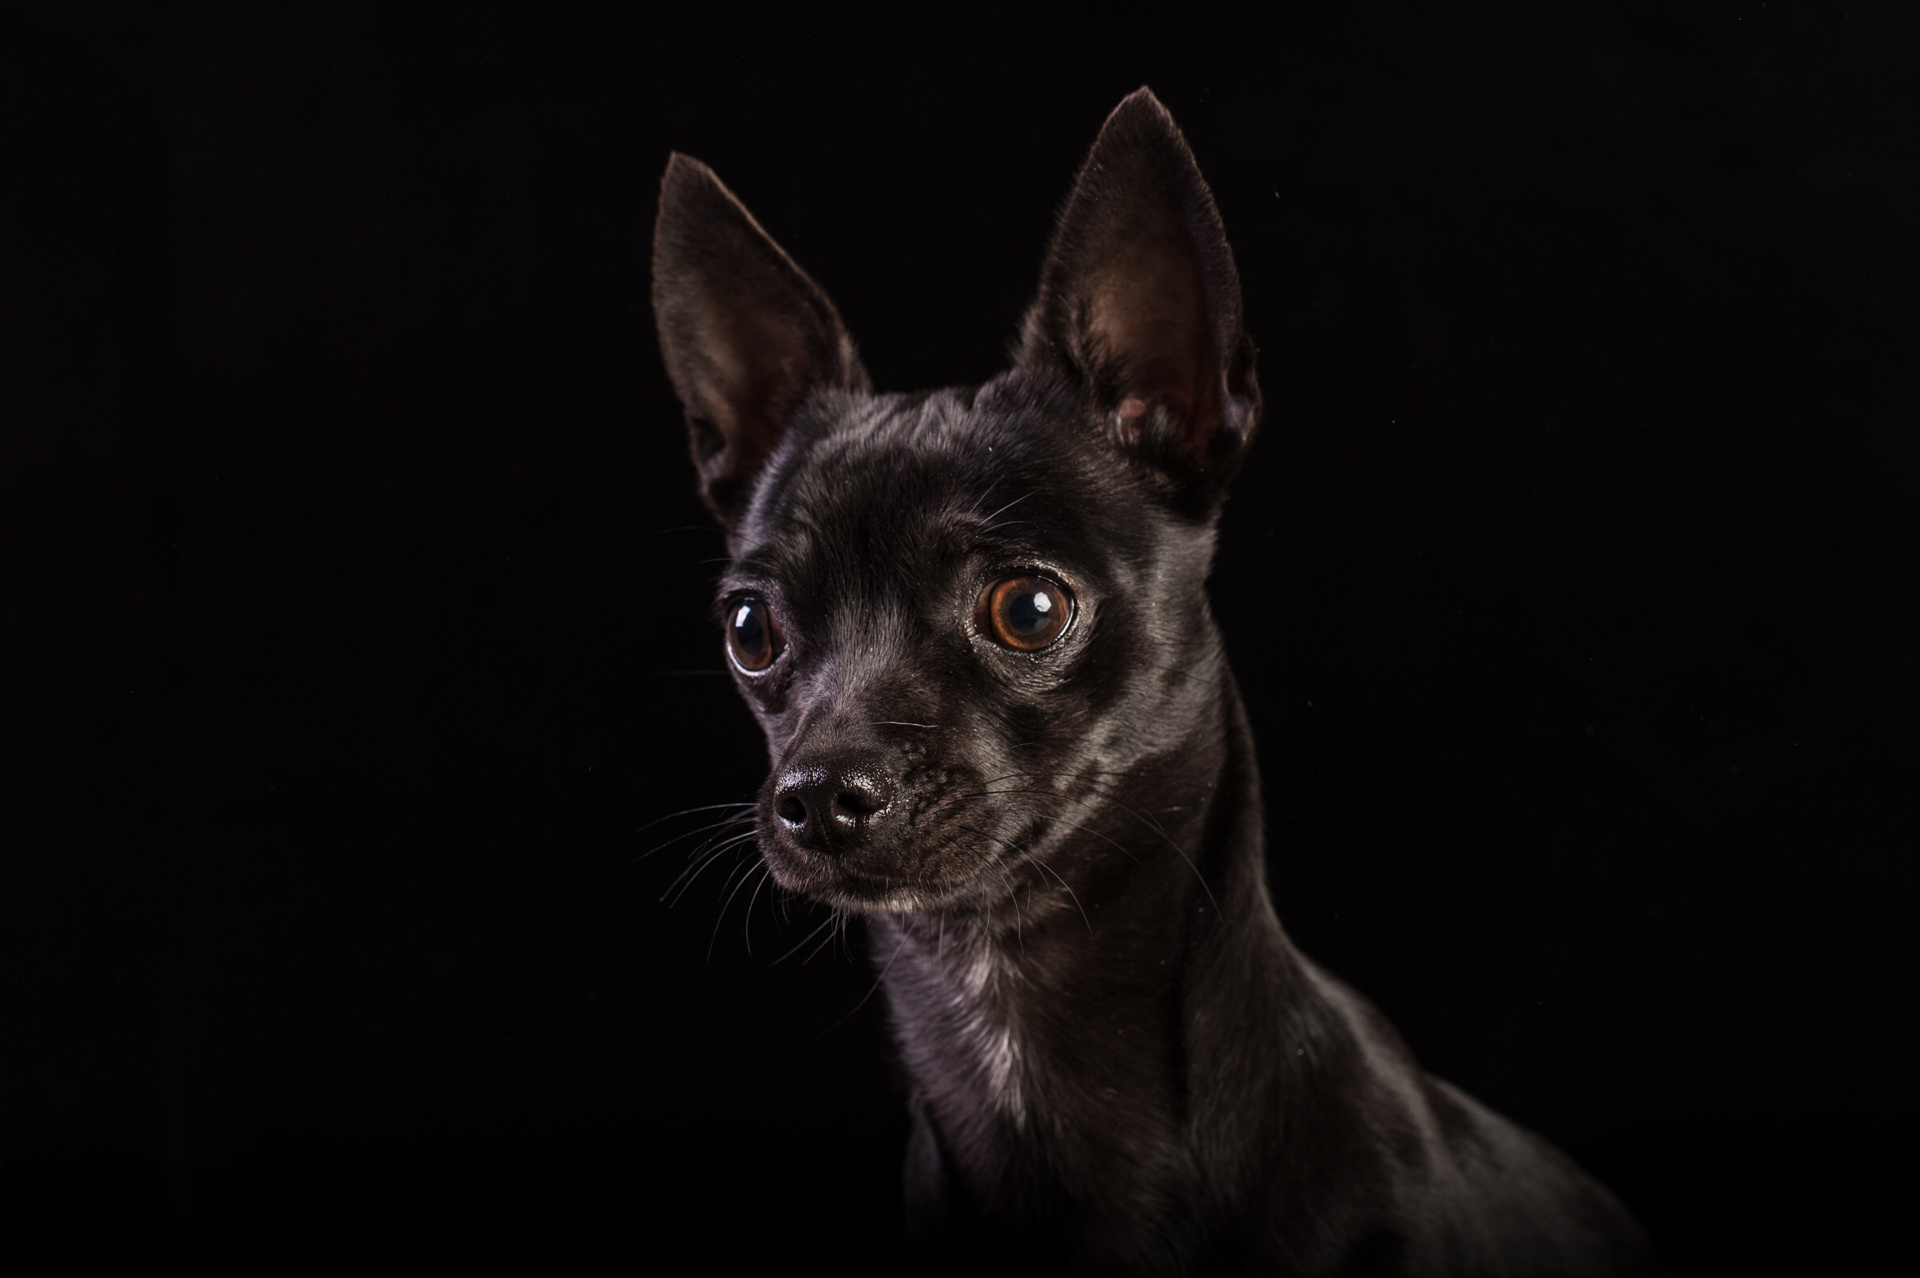 The-Artful-Dog-Studio-Dog-Photographer-8-1